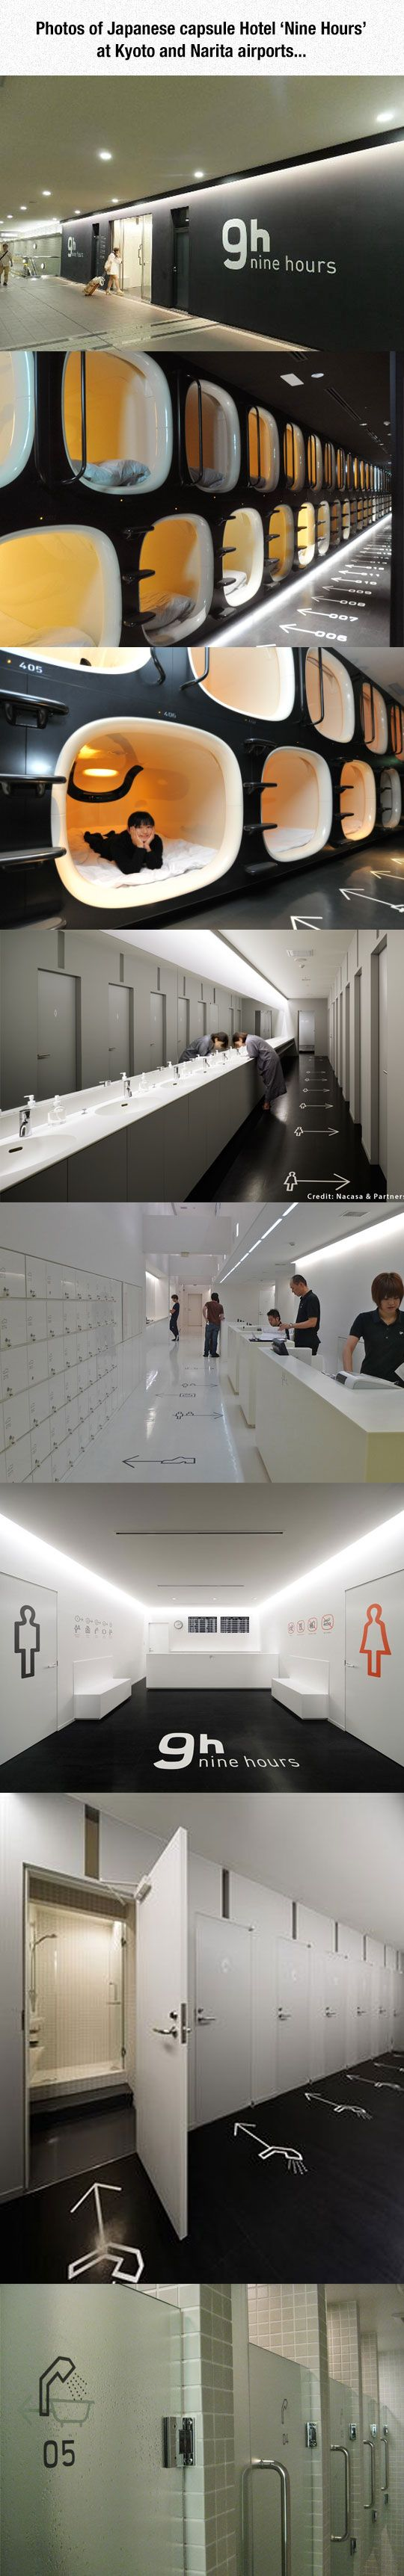 the japanese capsule hotel ambiente de trabajo pinterest voyages signal tique et le japon. Black Bedroom Furniture Sets. Home Design Ideas